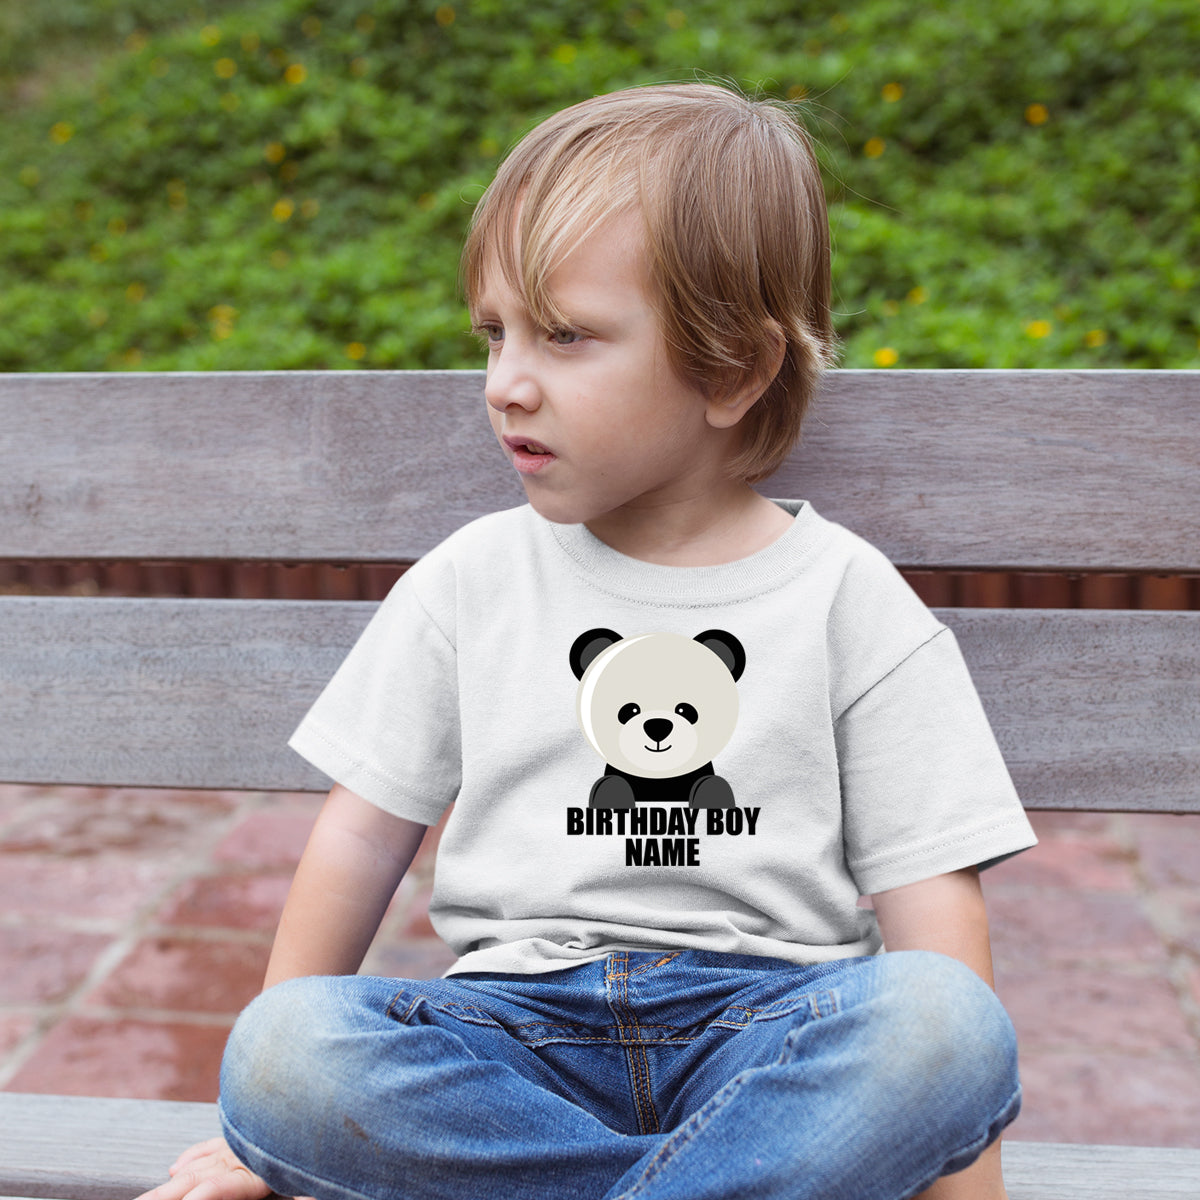 Sprinklecart Cute Little Panda Customized Poly-Cotton T Shirt Wear for Kids (White)